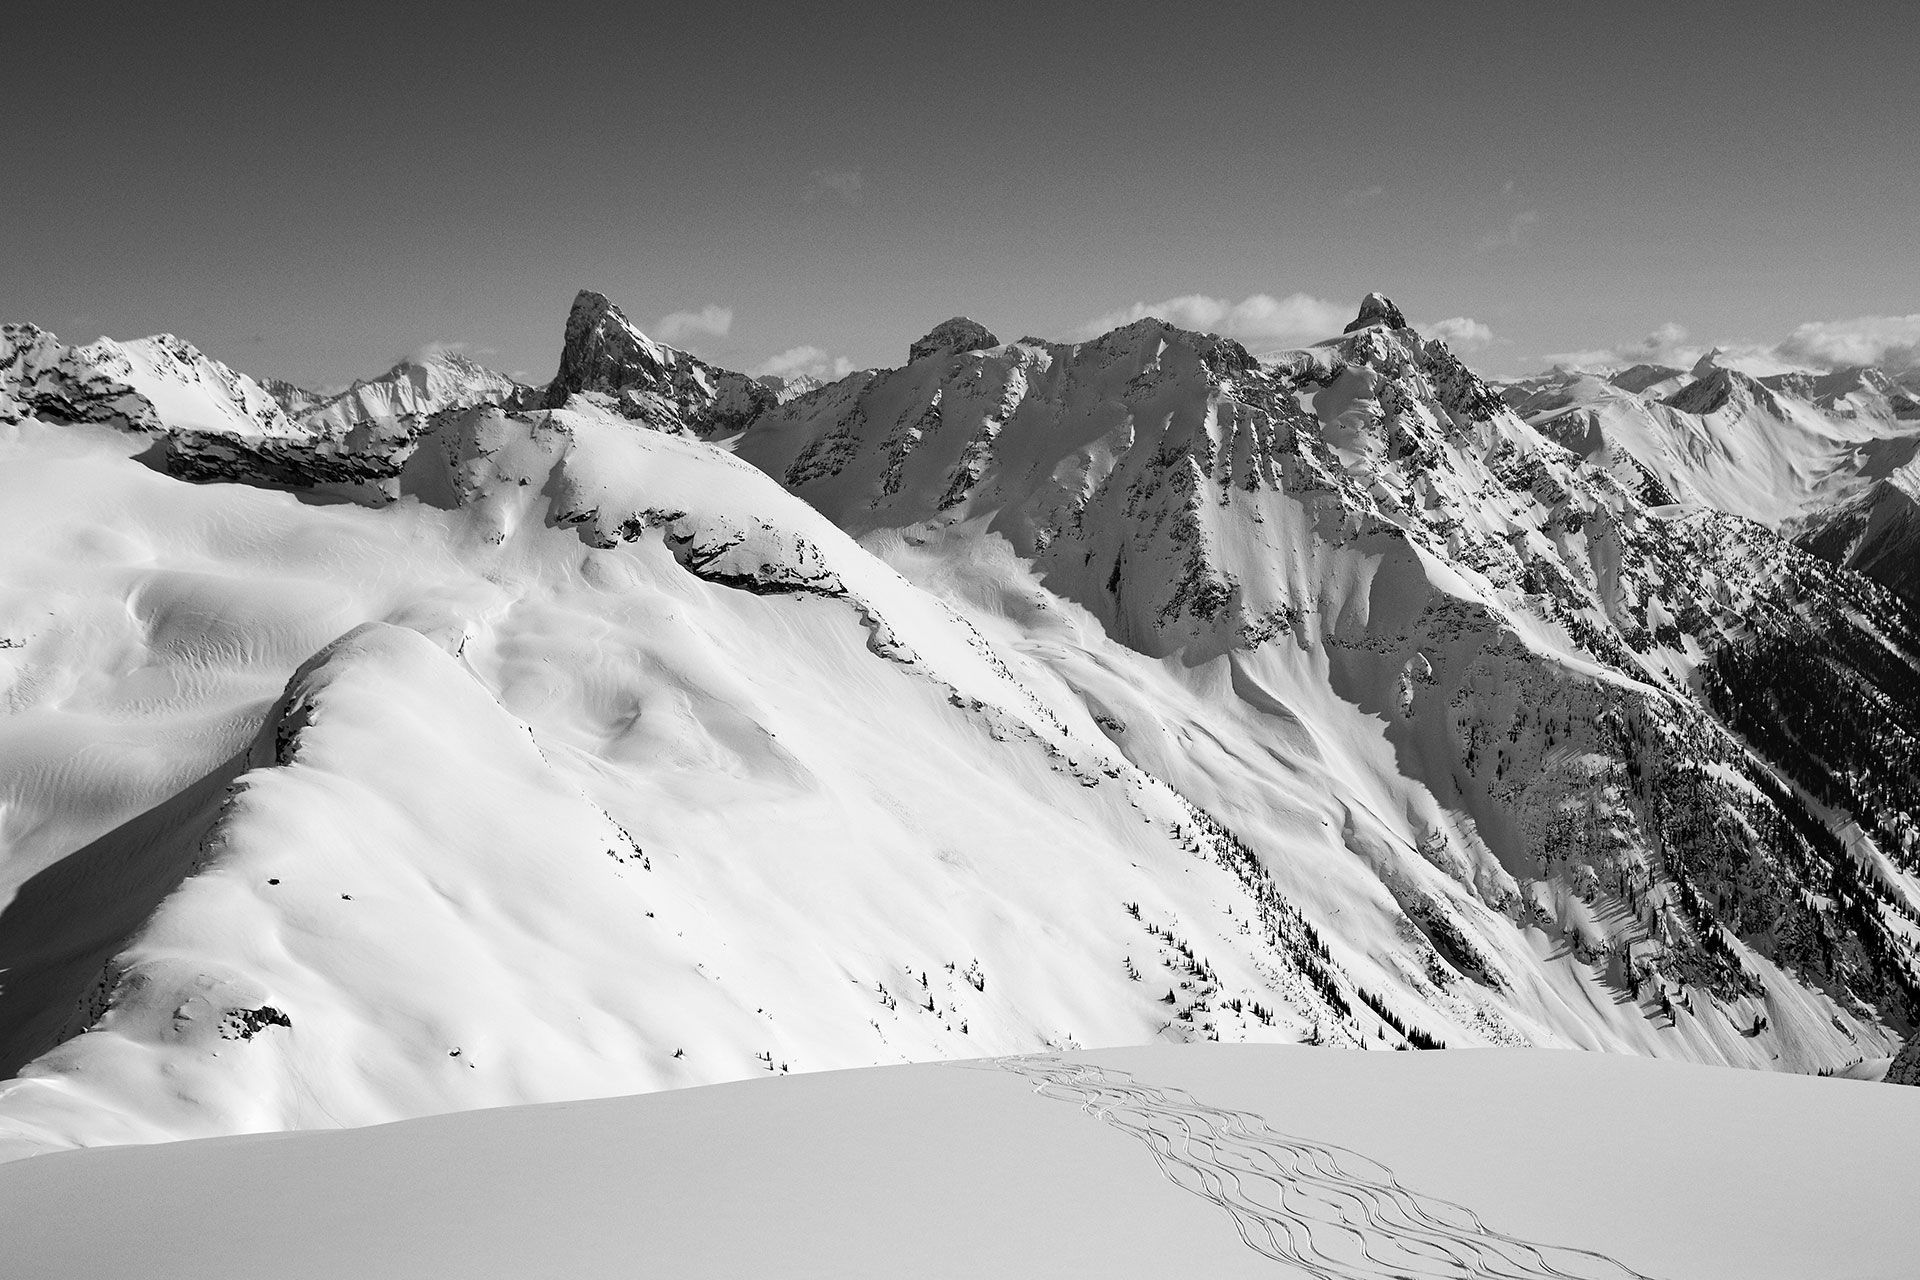 Slopes and curves in the Selkirks mountains hiking in group by Jocelyn Michel